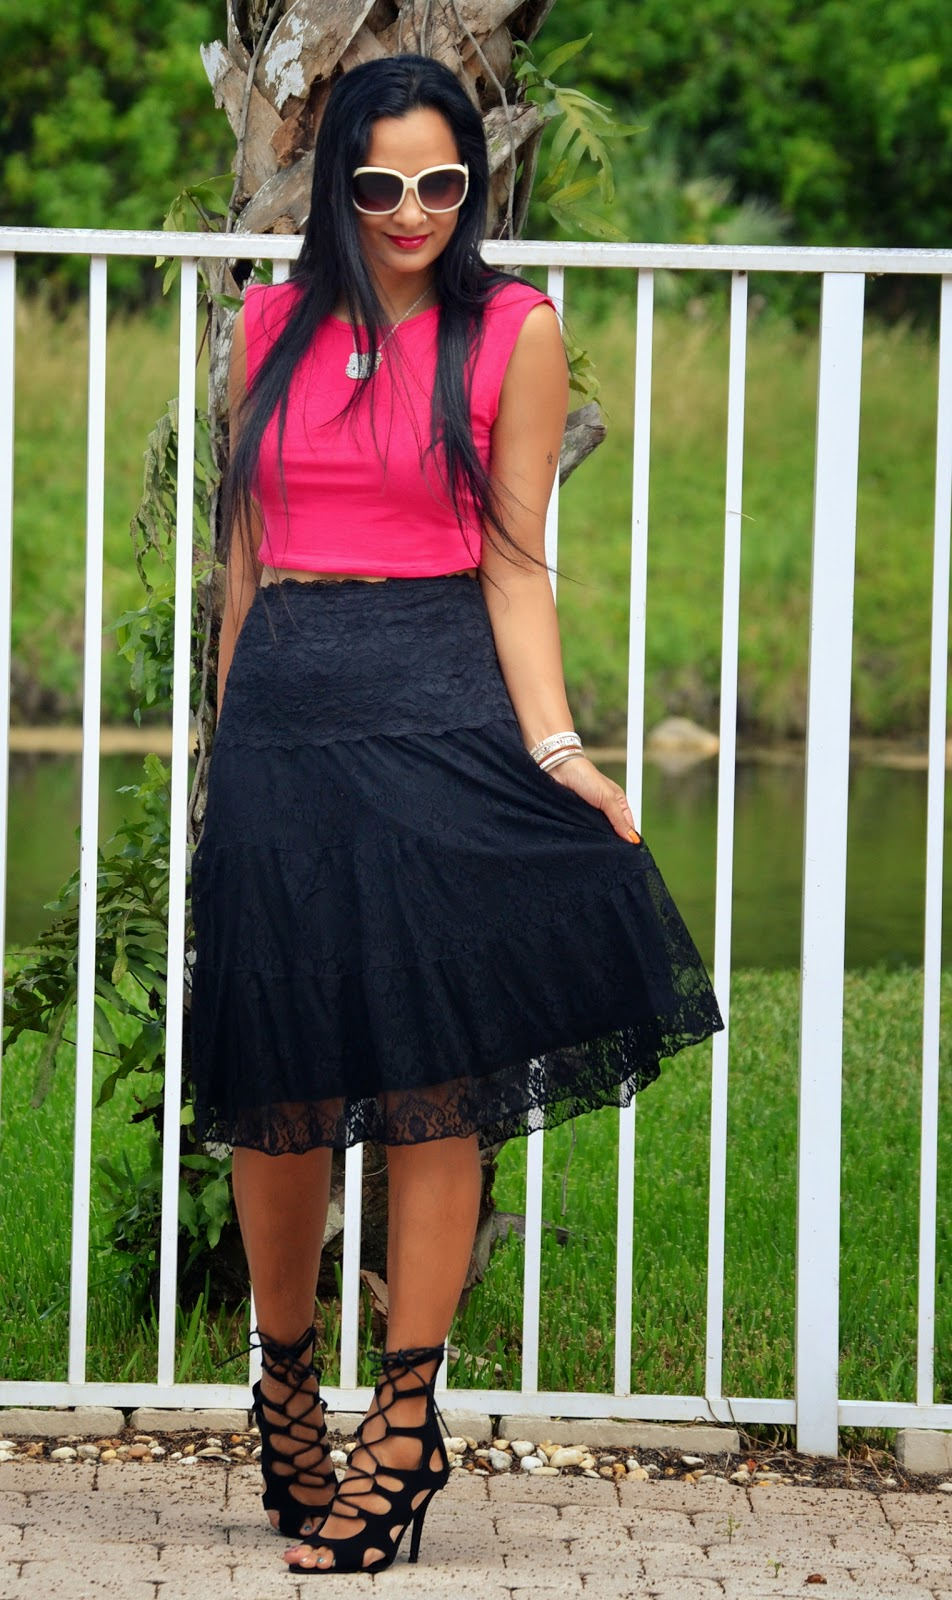 Lace Skirt And Crop Top www.sandysandhu.o